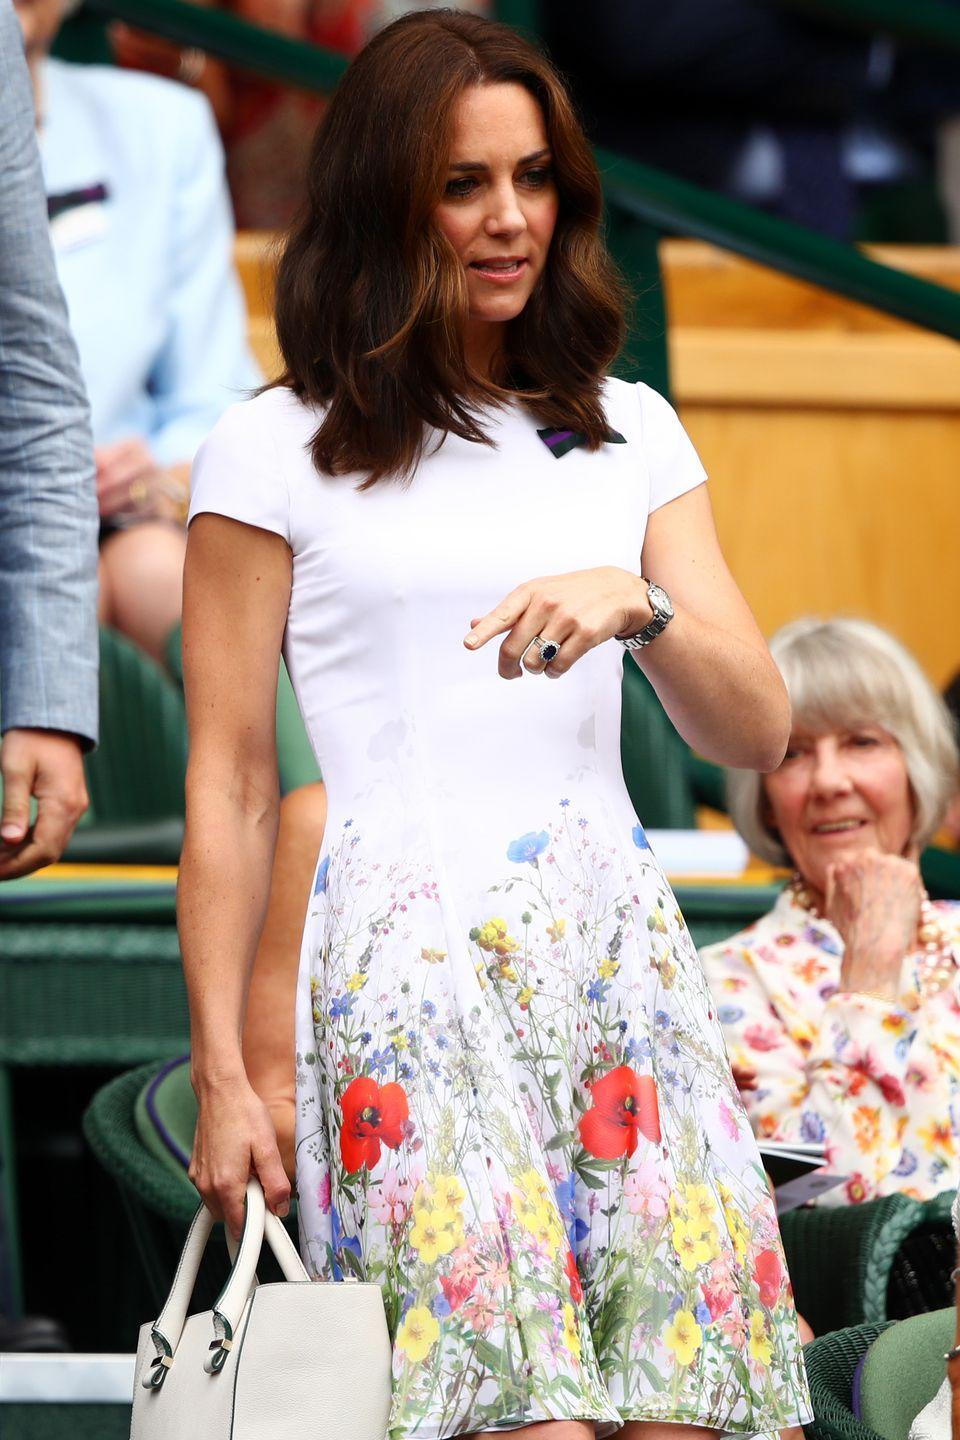 <p>In a Catherine Walker & Co colorful floral print dress and matching white bag while attending Wimbledon. </p>